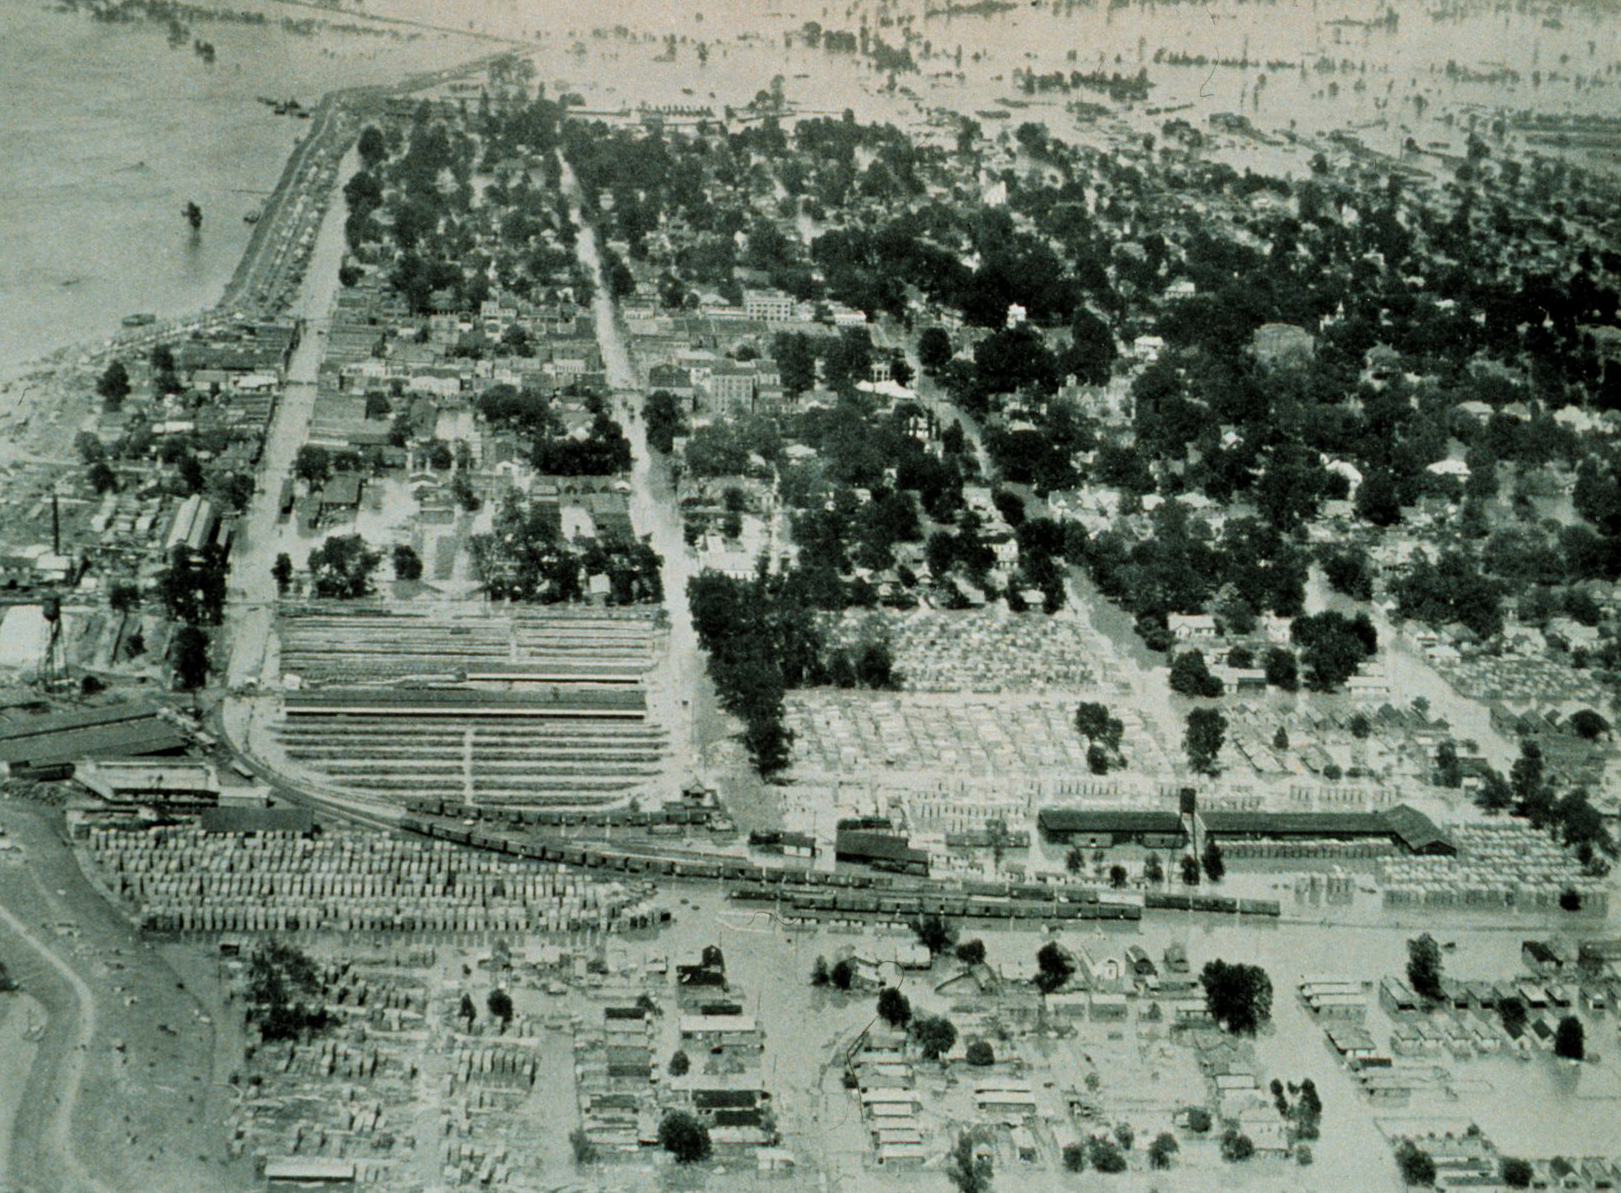 1927_mississippi_flood_greenville_missississippi.jpg